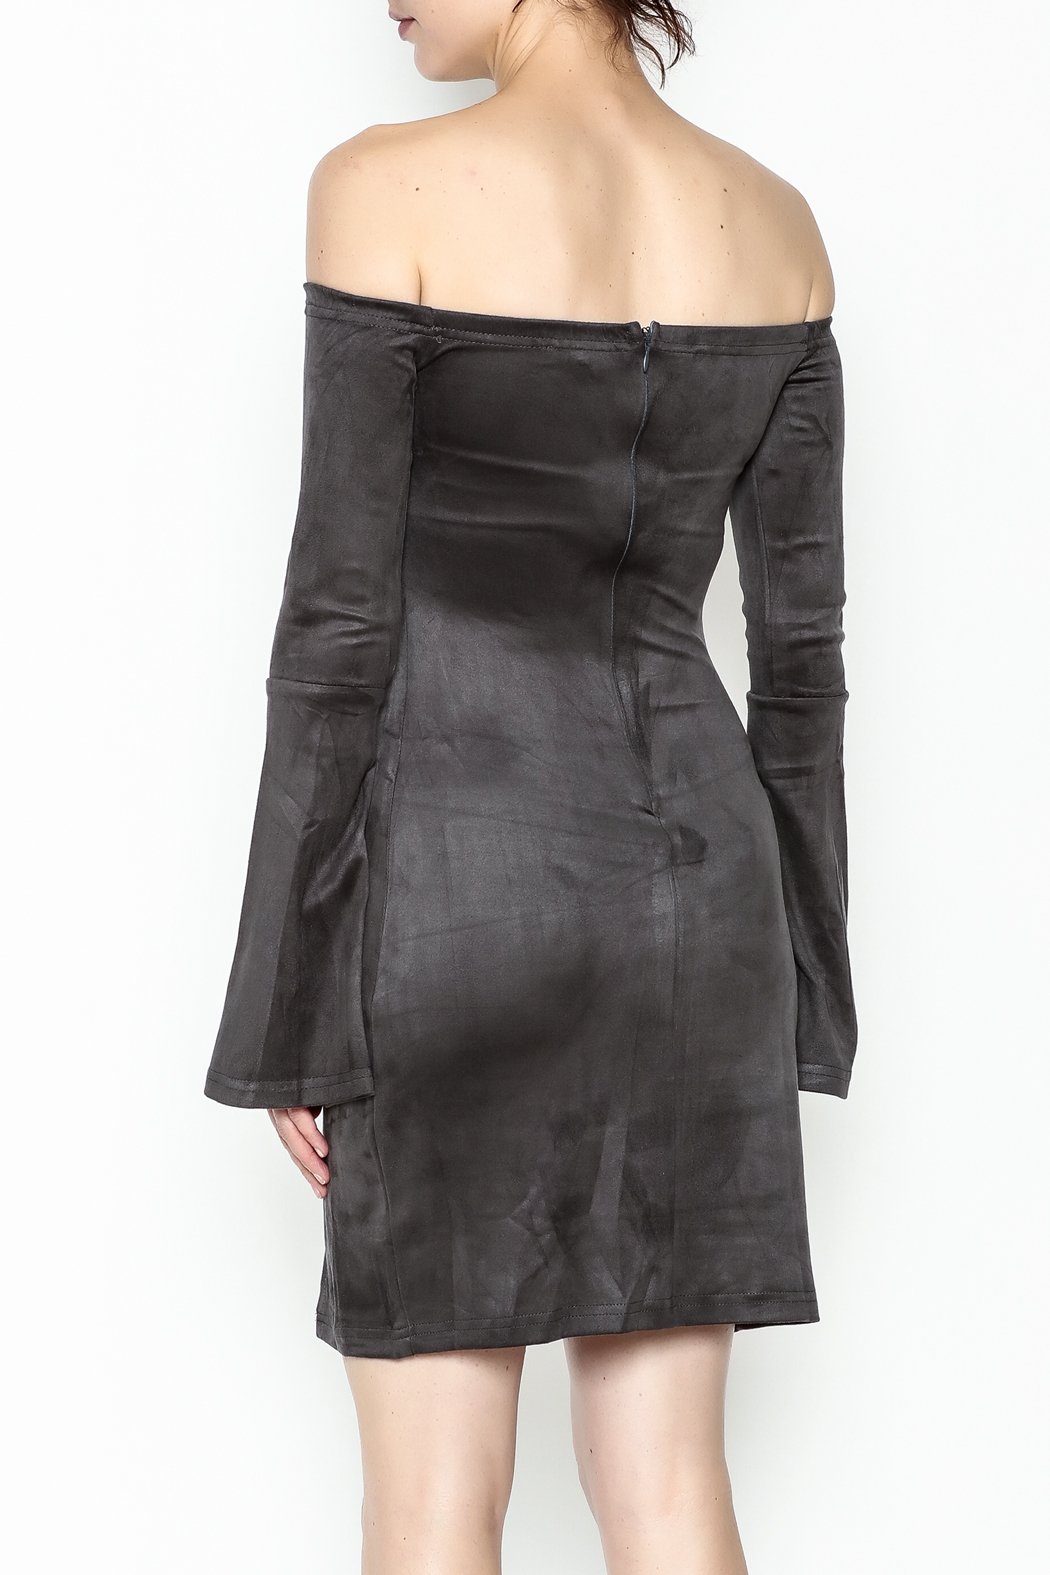 Olivaceous Suede Dress - Back Cropped Image